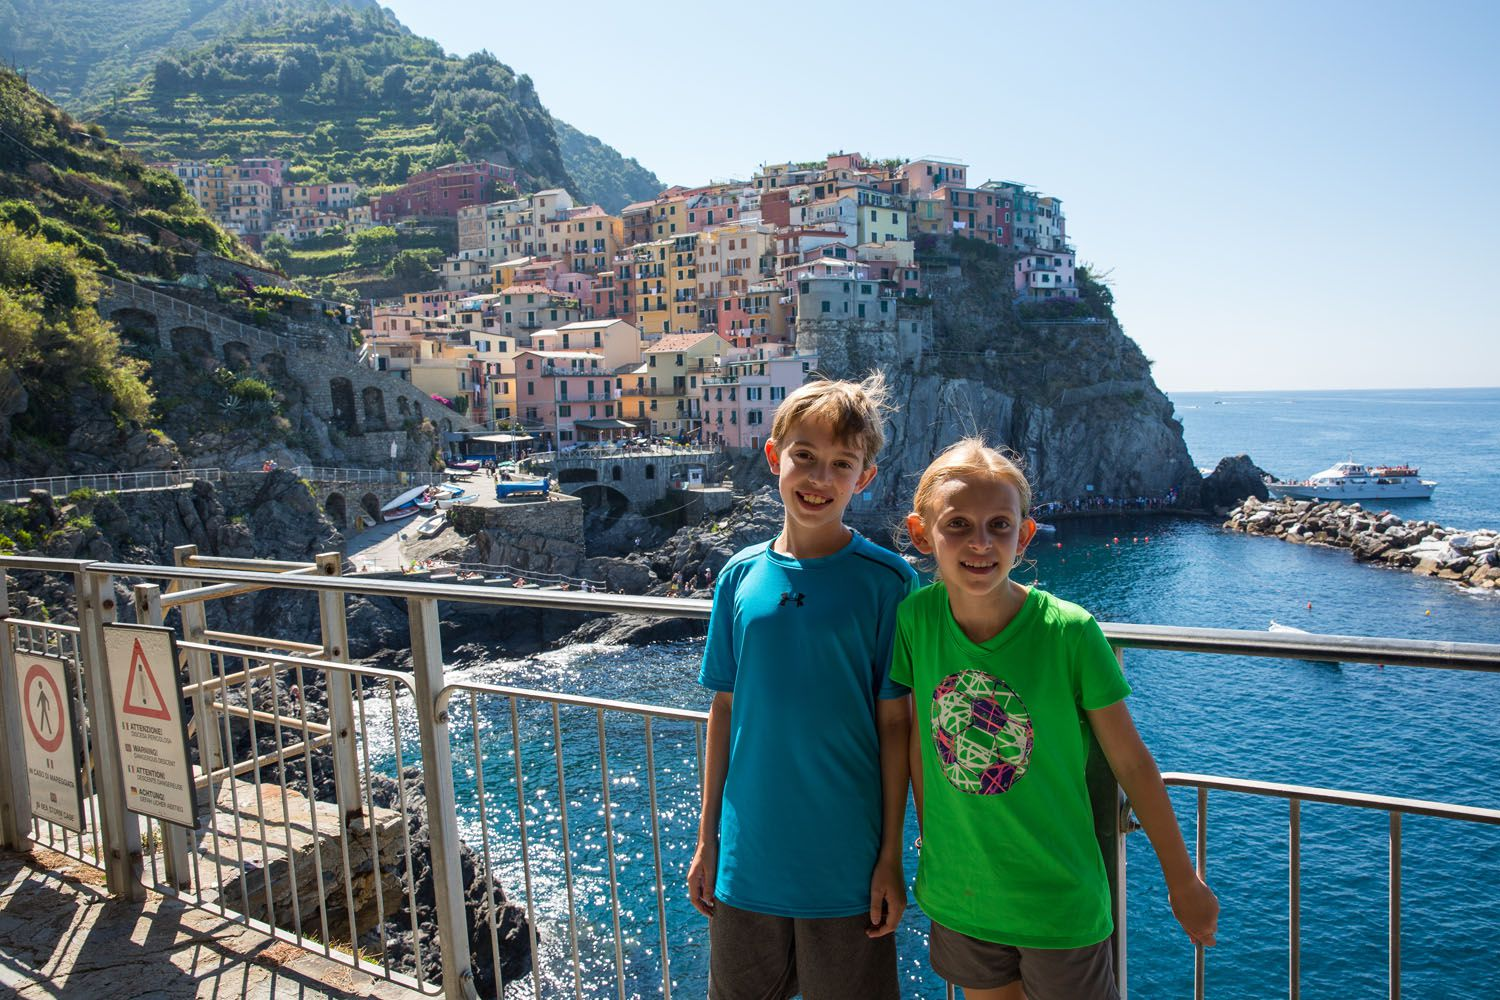 Hiking the Cinque Terre: What You Need to Know | Earth Trekkers on cinque terre italy map, monterosso al mare, ravello italy map, cortona italy map, positano italy map, amalfi coast italy map, portovenere italy map, tyrol italy map, urbino italy map, cinco de terre italy map, portofino italy map, cinque terre, italy, italian riviera map, bogliasco italy map, riomaggiore italy map, italian riviera, vernazza italy map, province of la spezia, la spezia, montepulciano italy map, capri italy map, lavagna italy map, mantua italy map, castellana grotte italy map,